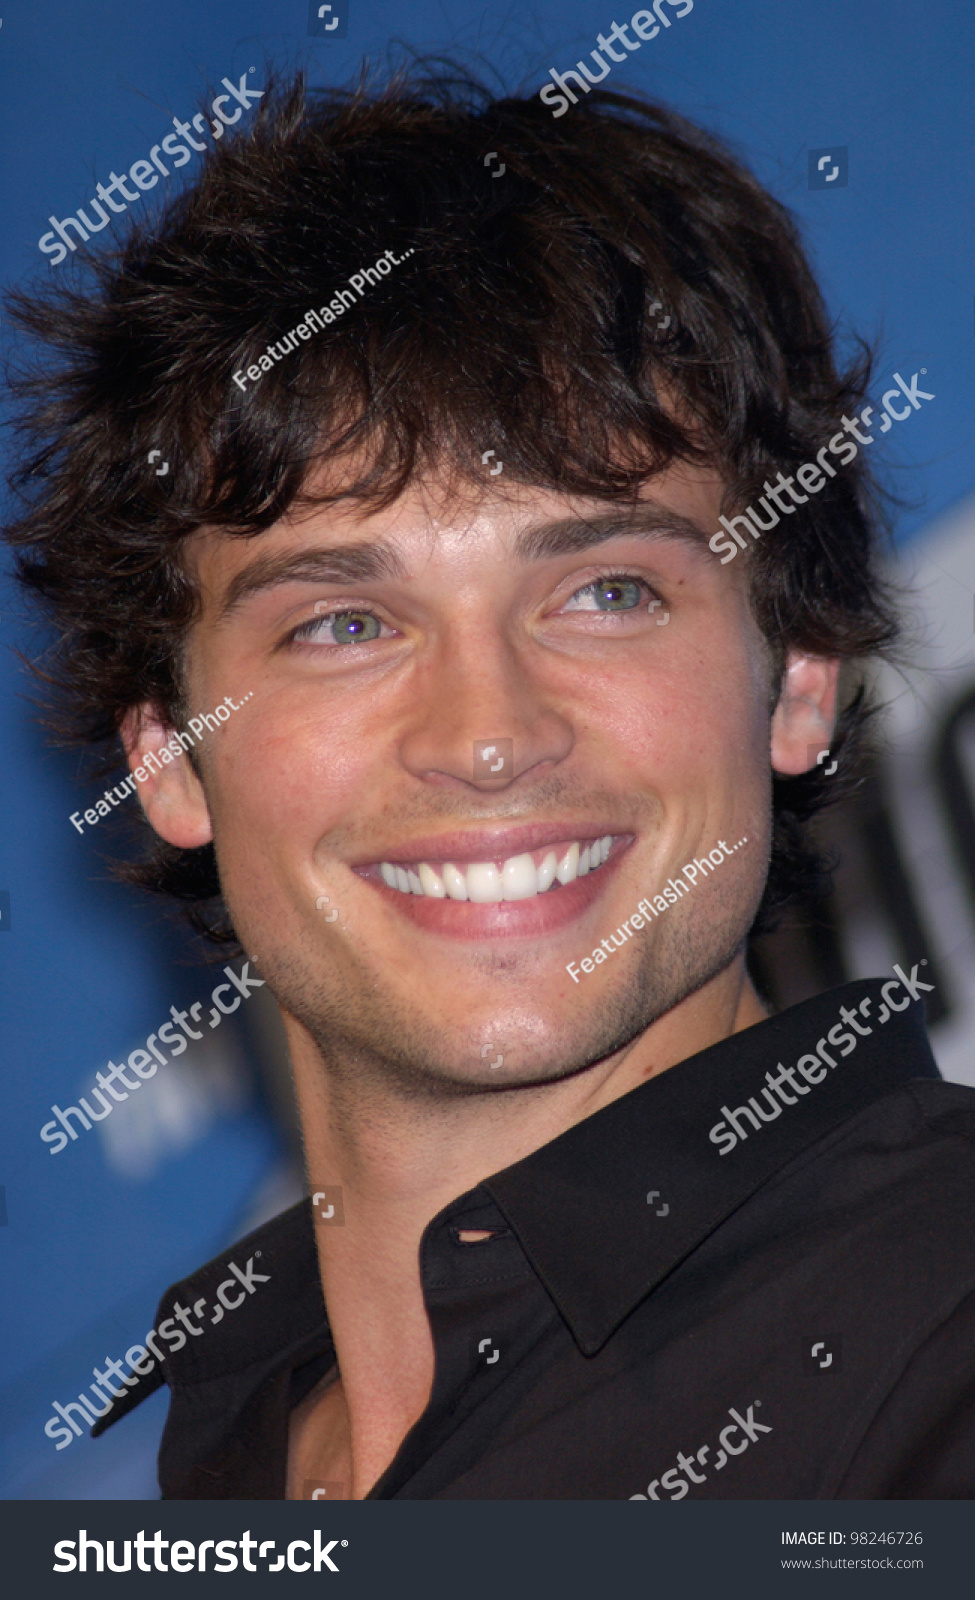 Smallville Star Tom Welling At The 2002 Teen Choice Awards ...